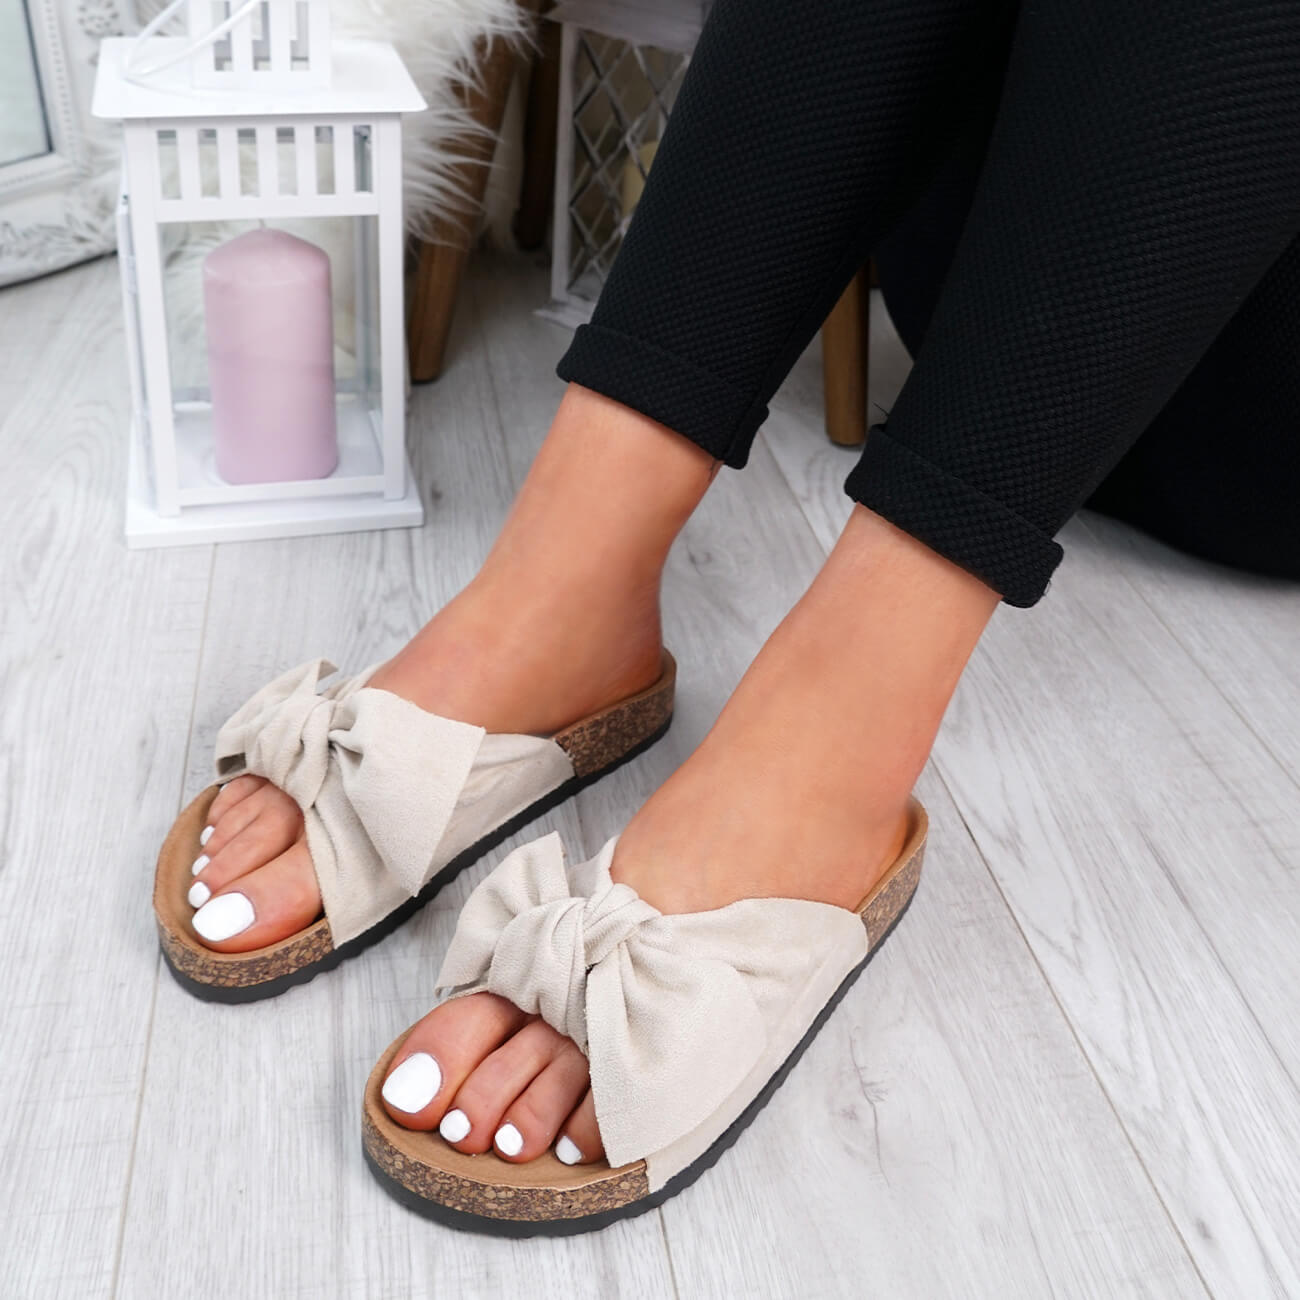 WOMENS-LADIES-SLIP-ON-FLAT-SANDALS-BOW-SLIDERS-SUMMER-CASUAL-SHOES-SIZE thumbnail 7